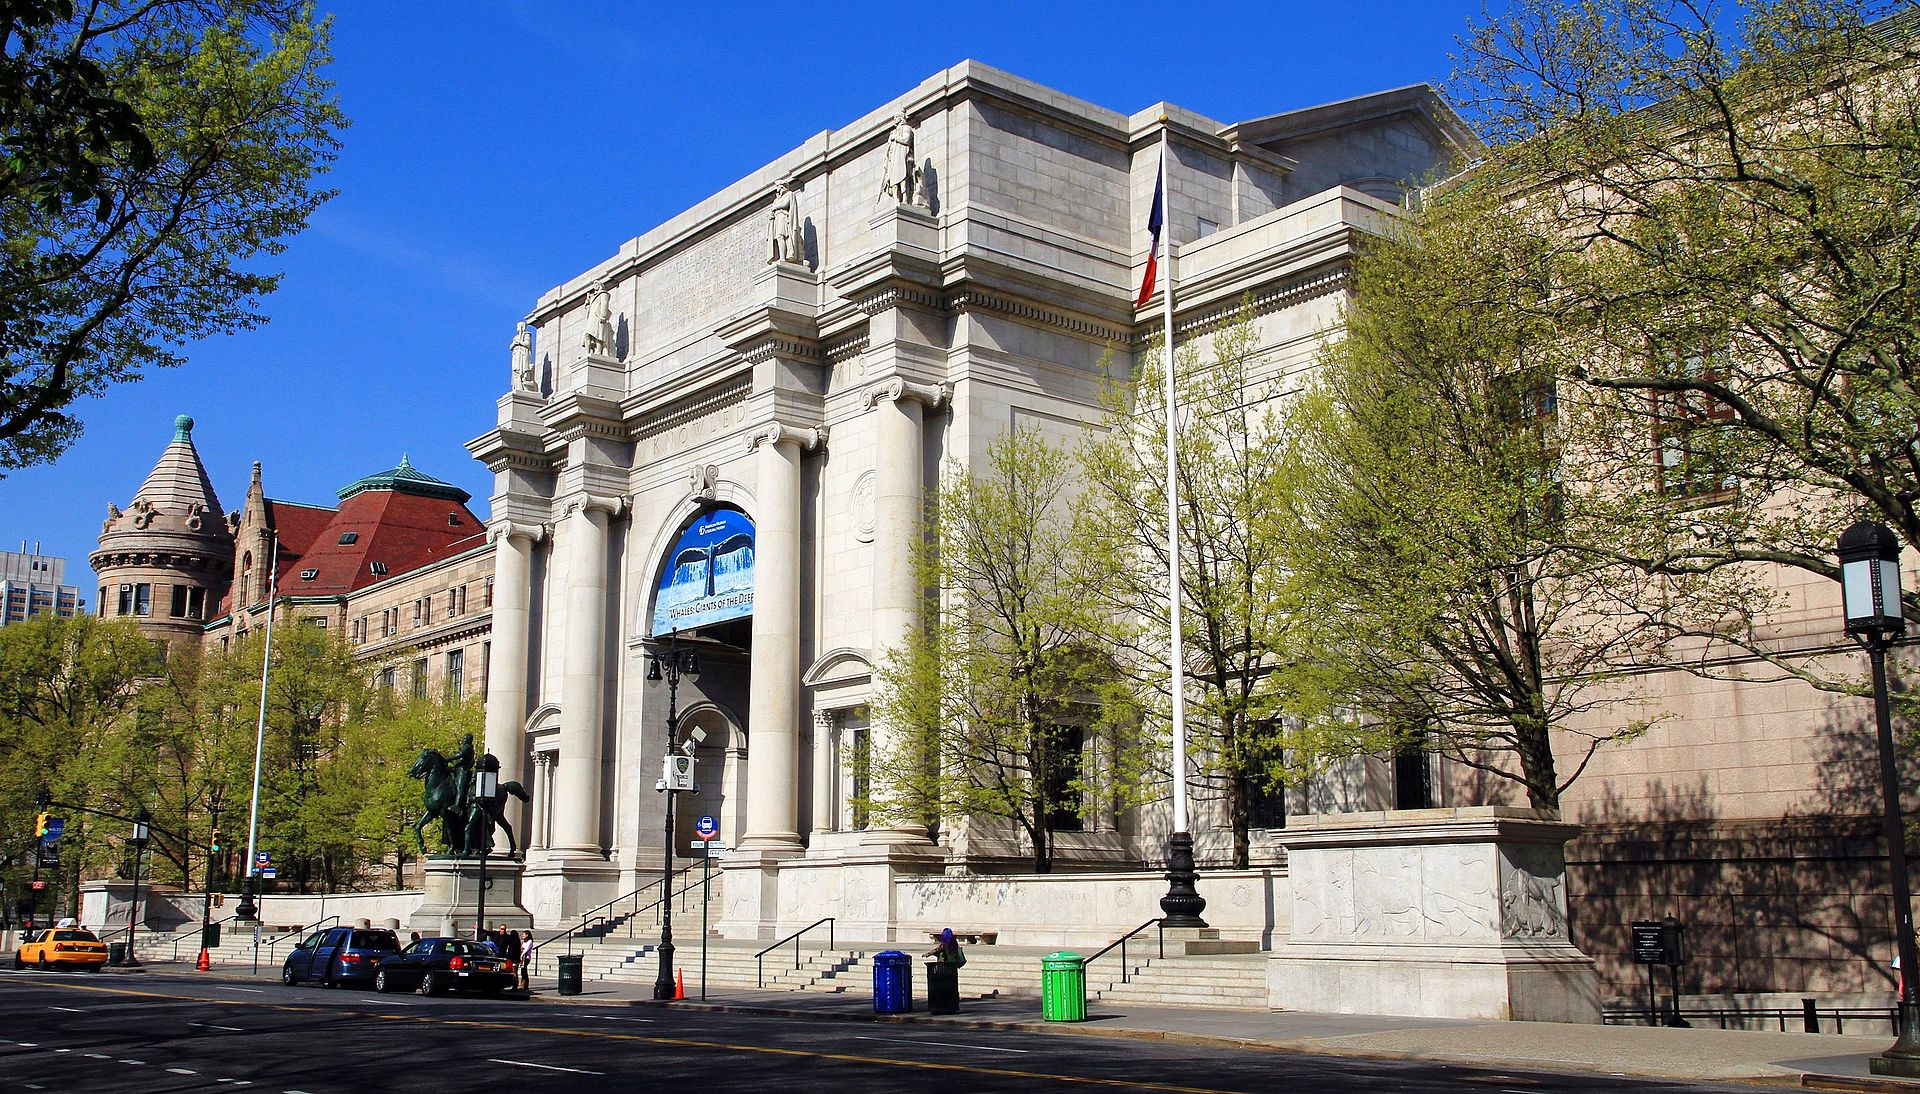 essay about american museum of natural history Discuss the importance of the american museum of natural history (amnh) certificate for your future role as a professional nurse.